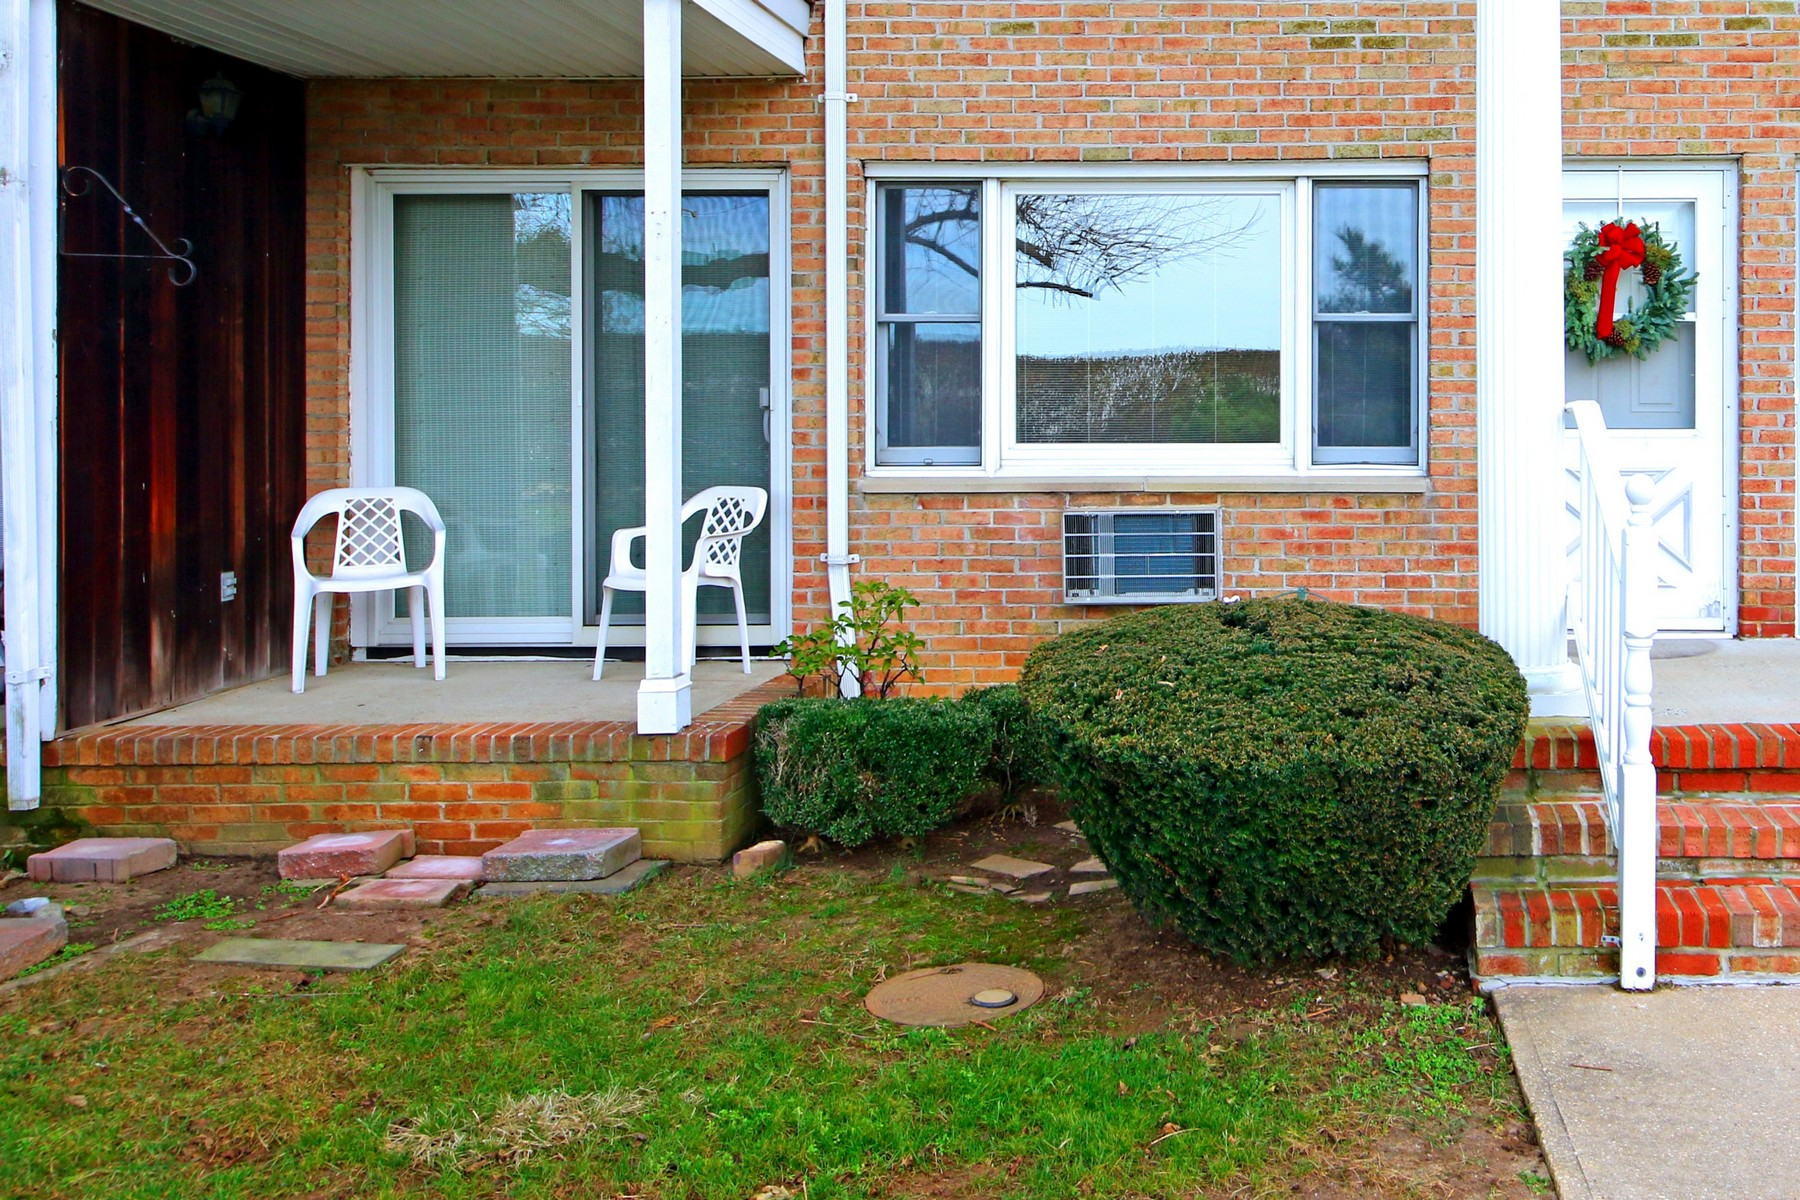 Condominium for Sale at 324 Shore Dr. # A7, Highlands 324 Shore Dr. #A7, Highlands, New Jersey 07732 United States